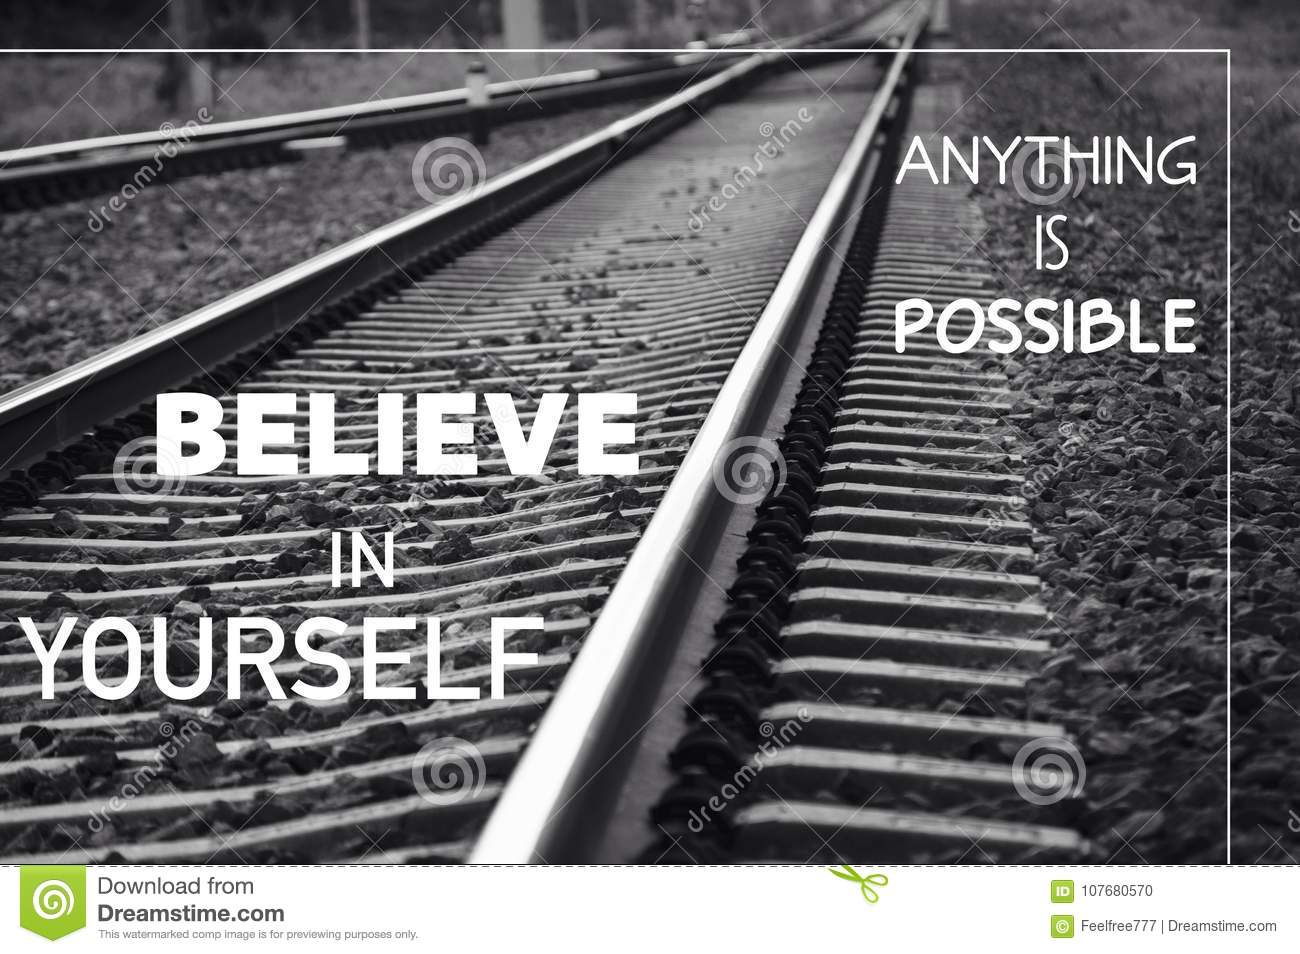 Anything is possible. Believe in yourself